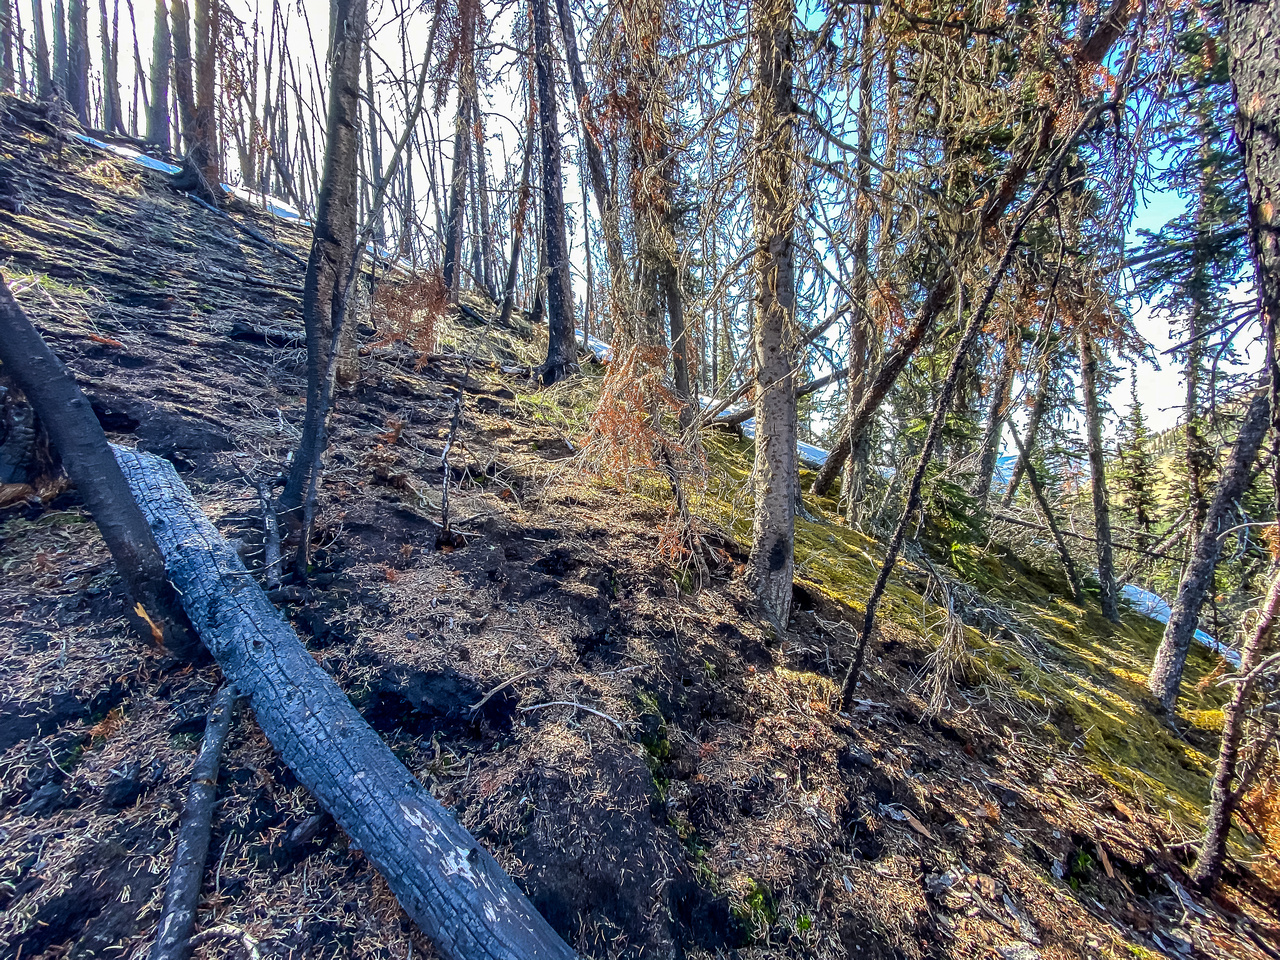 Ascending through another small burn, this time east of Skeleton Mtn.